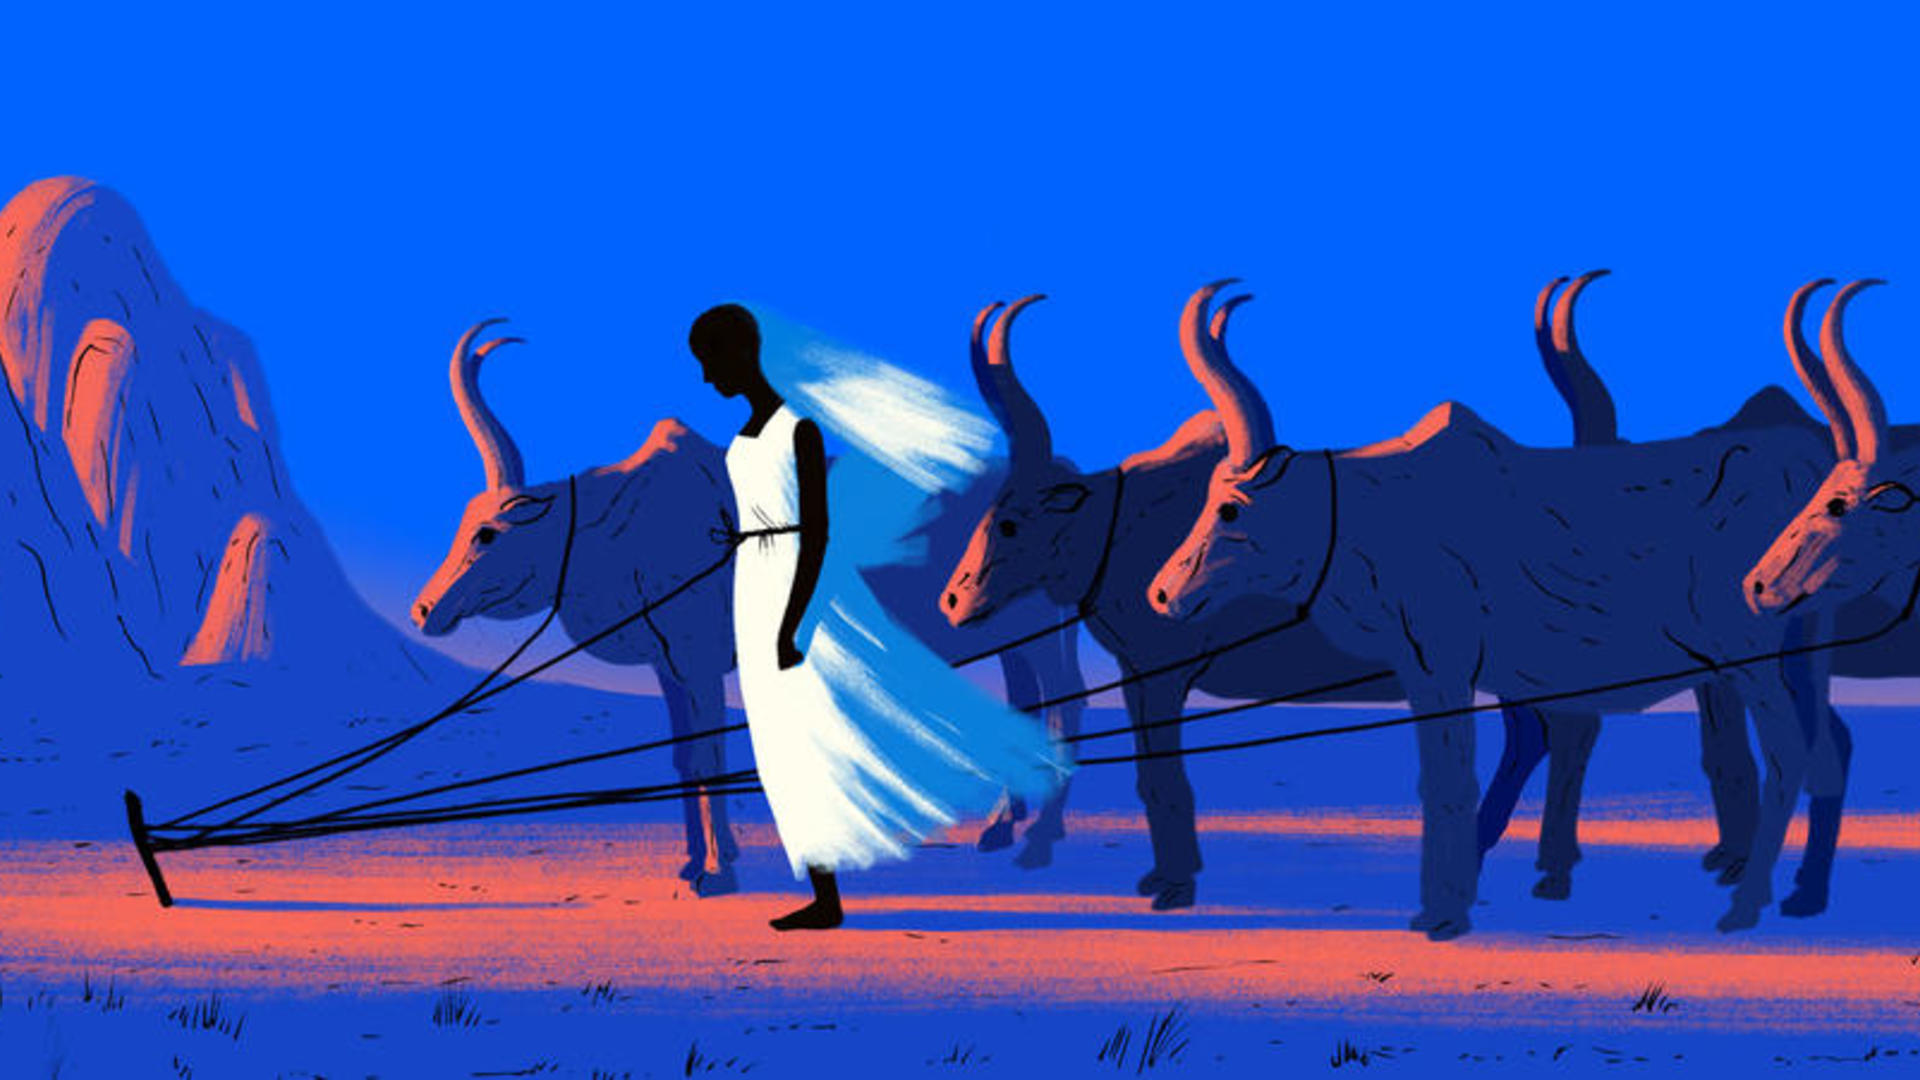 Illustration of a a girl standing tethered with cows.